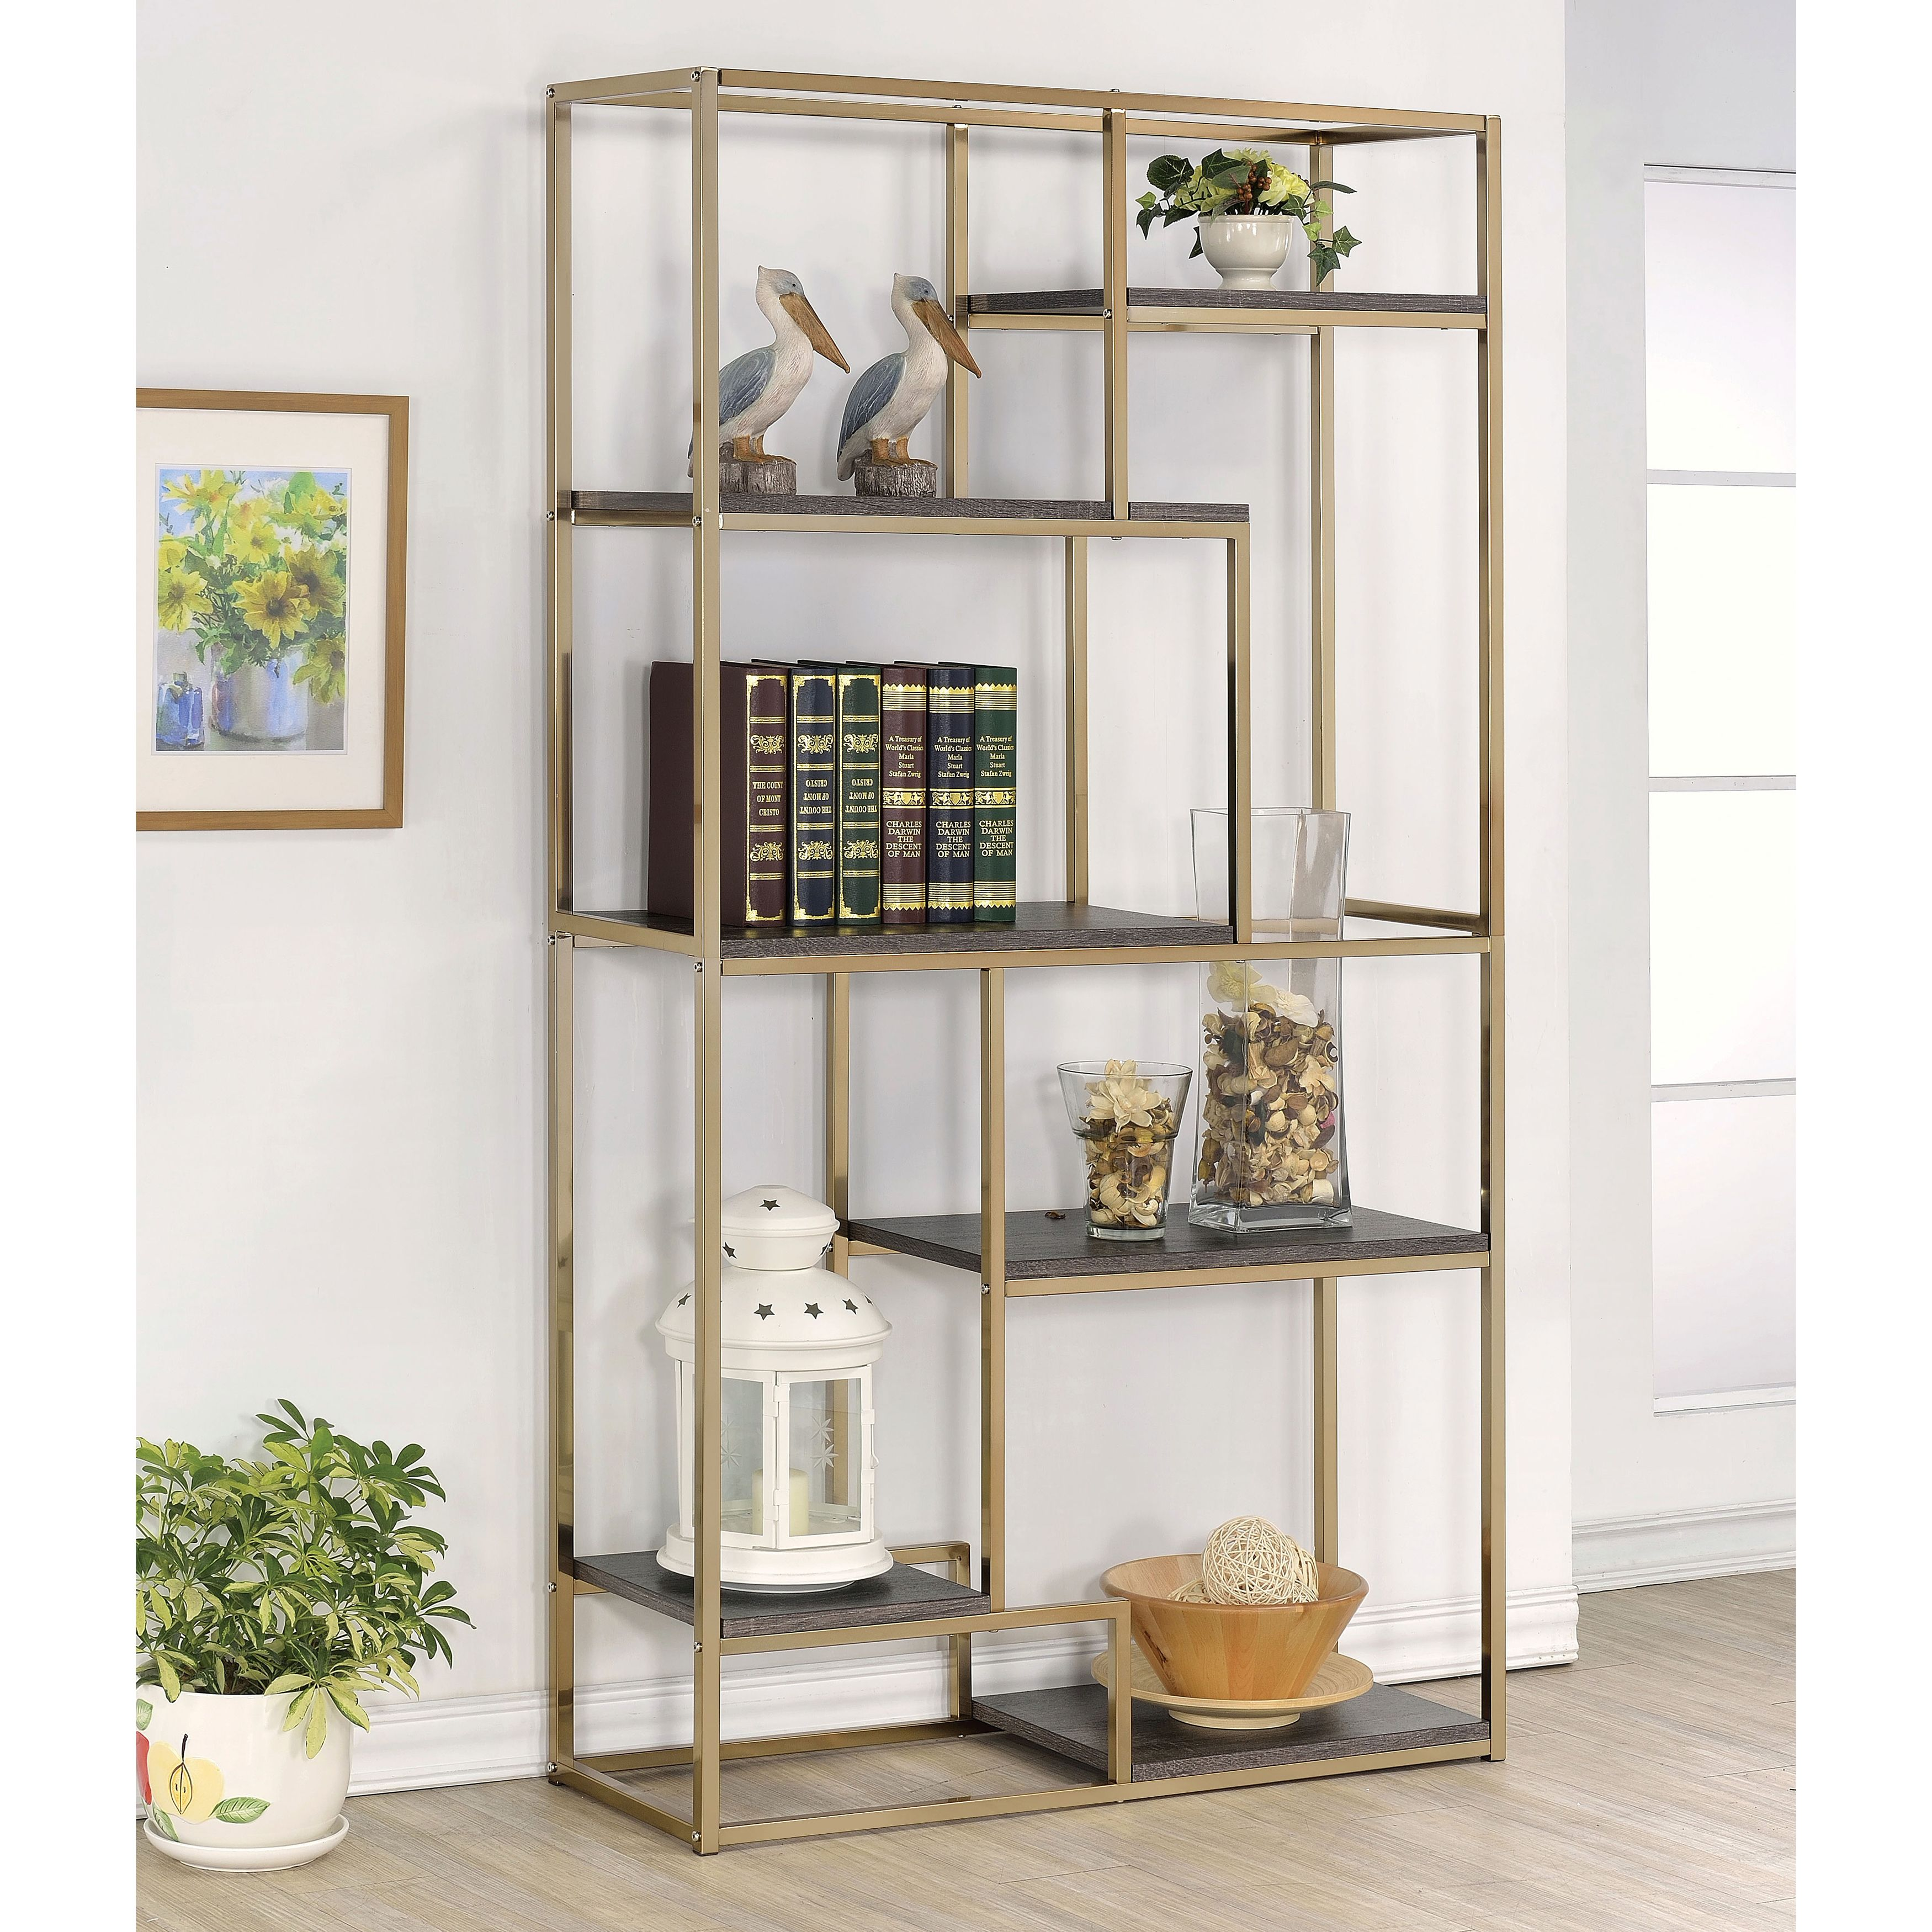 Add A Metallic Accent To Your Home With This Statement Bookcase Choose From Chrome Or Champagne Enhance The Shined Metal Framework While Six